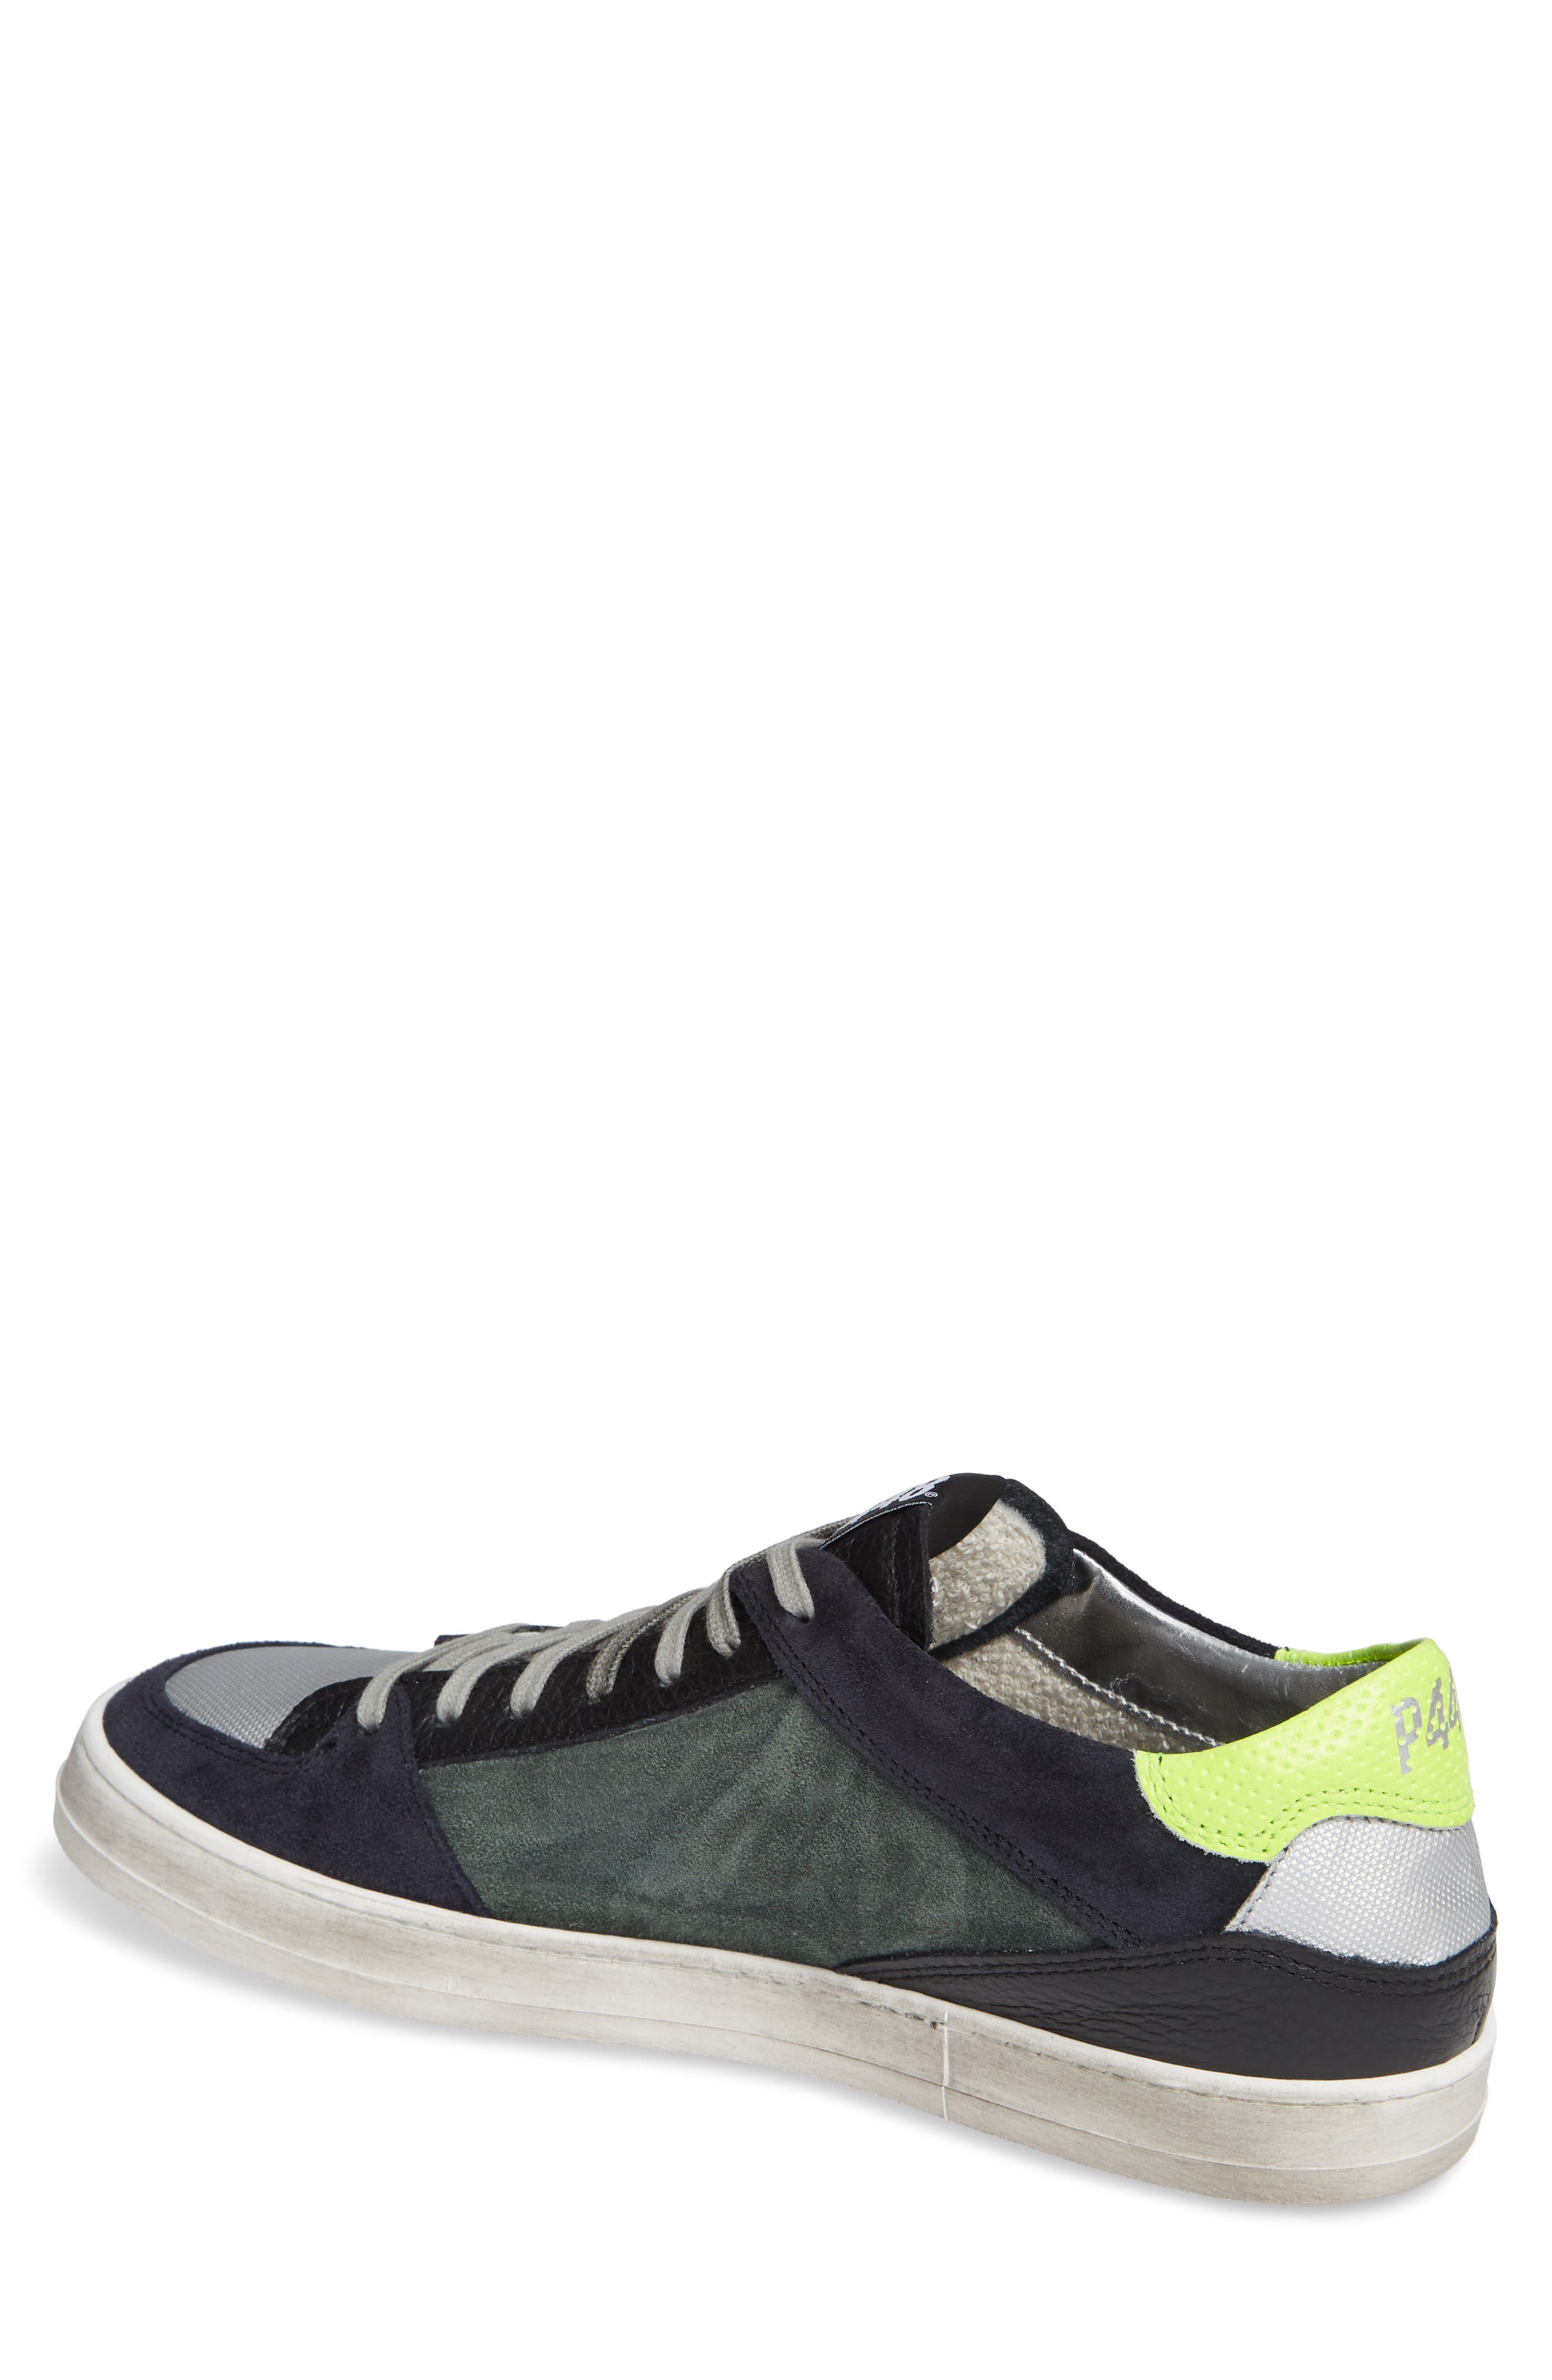 A8Queens Sneaker,                             Alternate thumbnail 2, color,                             WILLOW GREEN